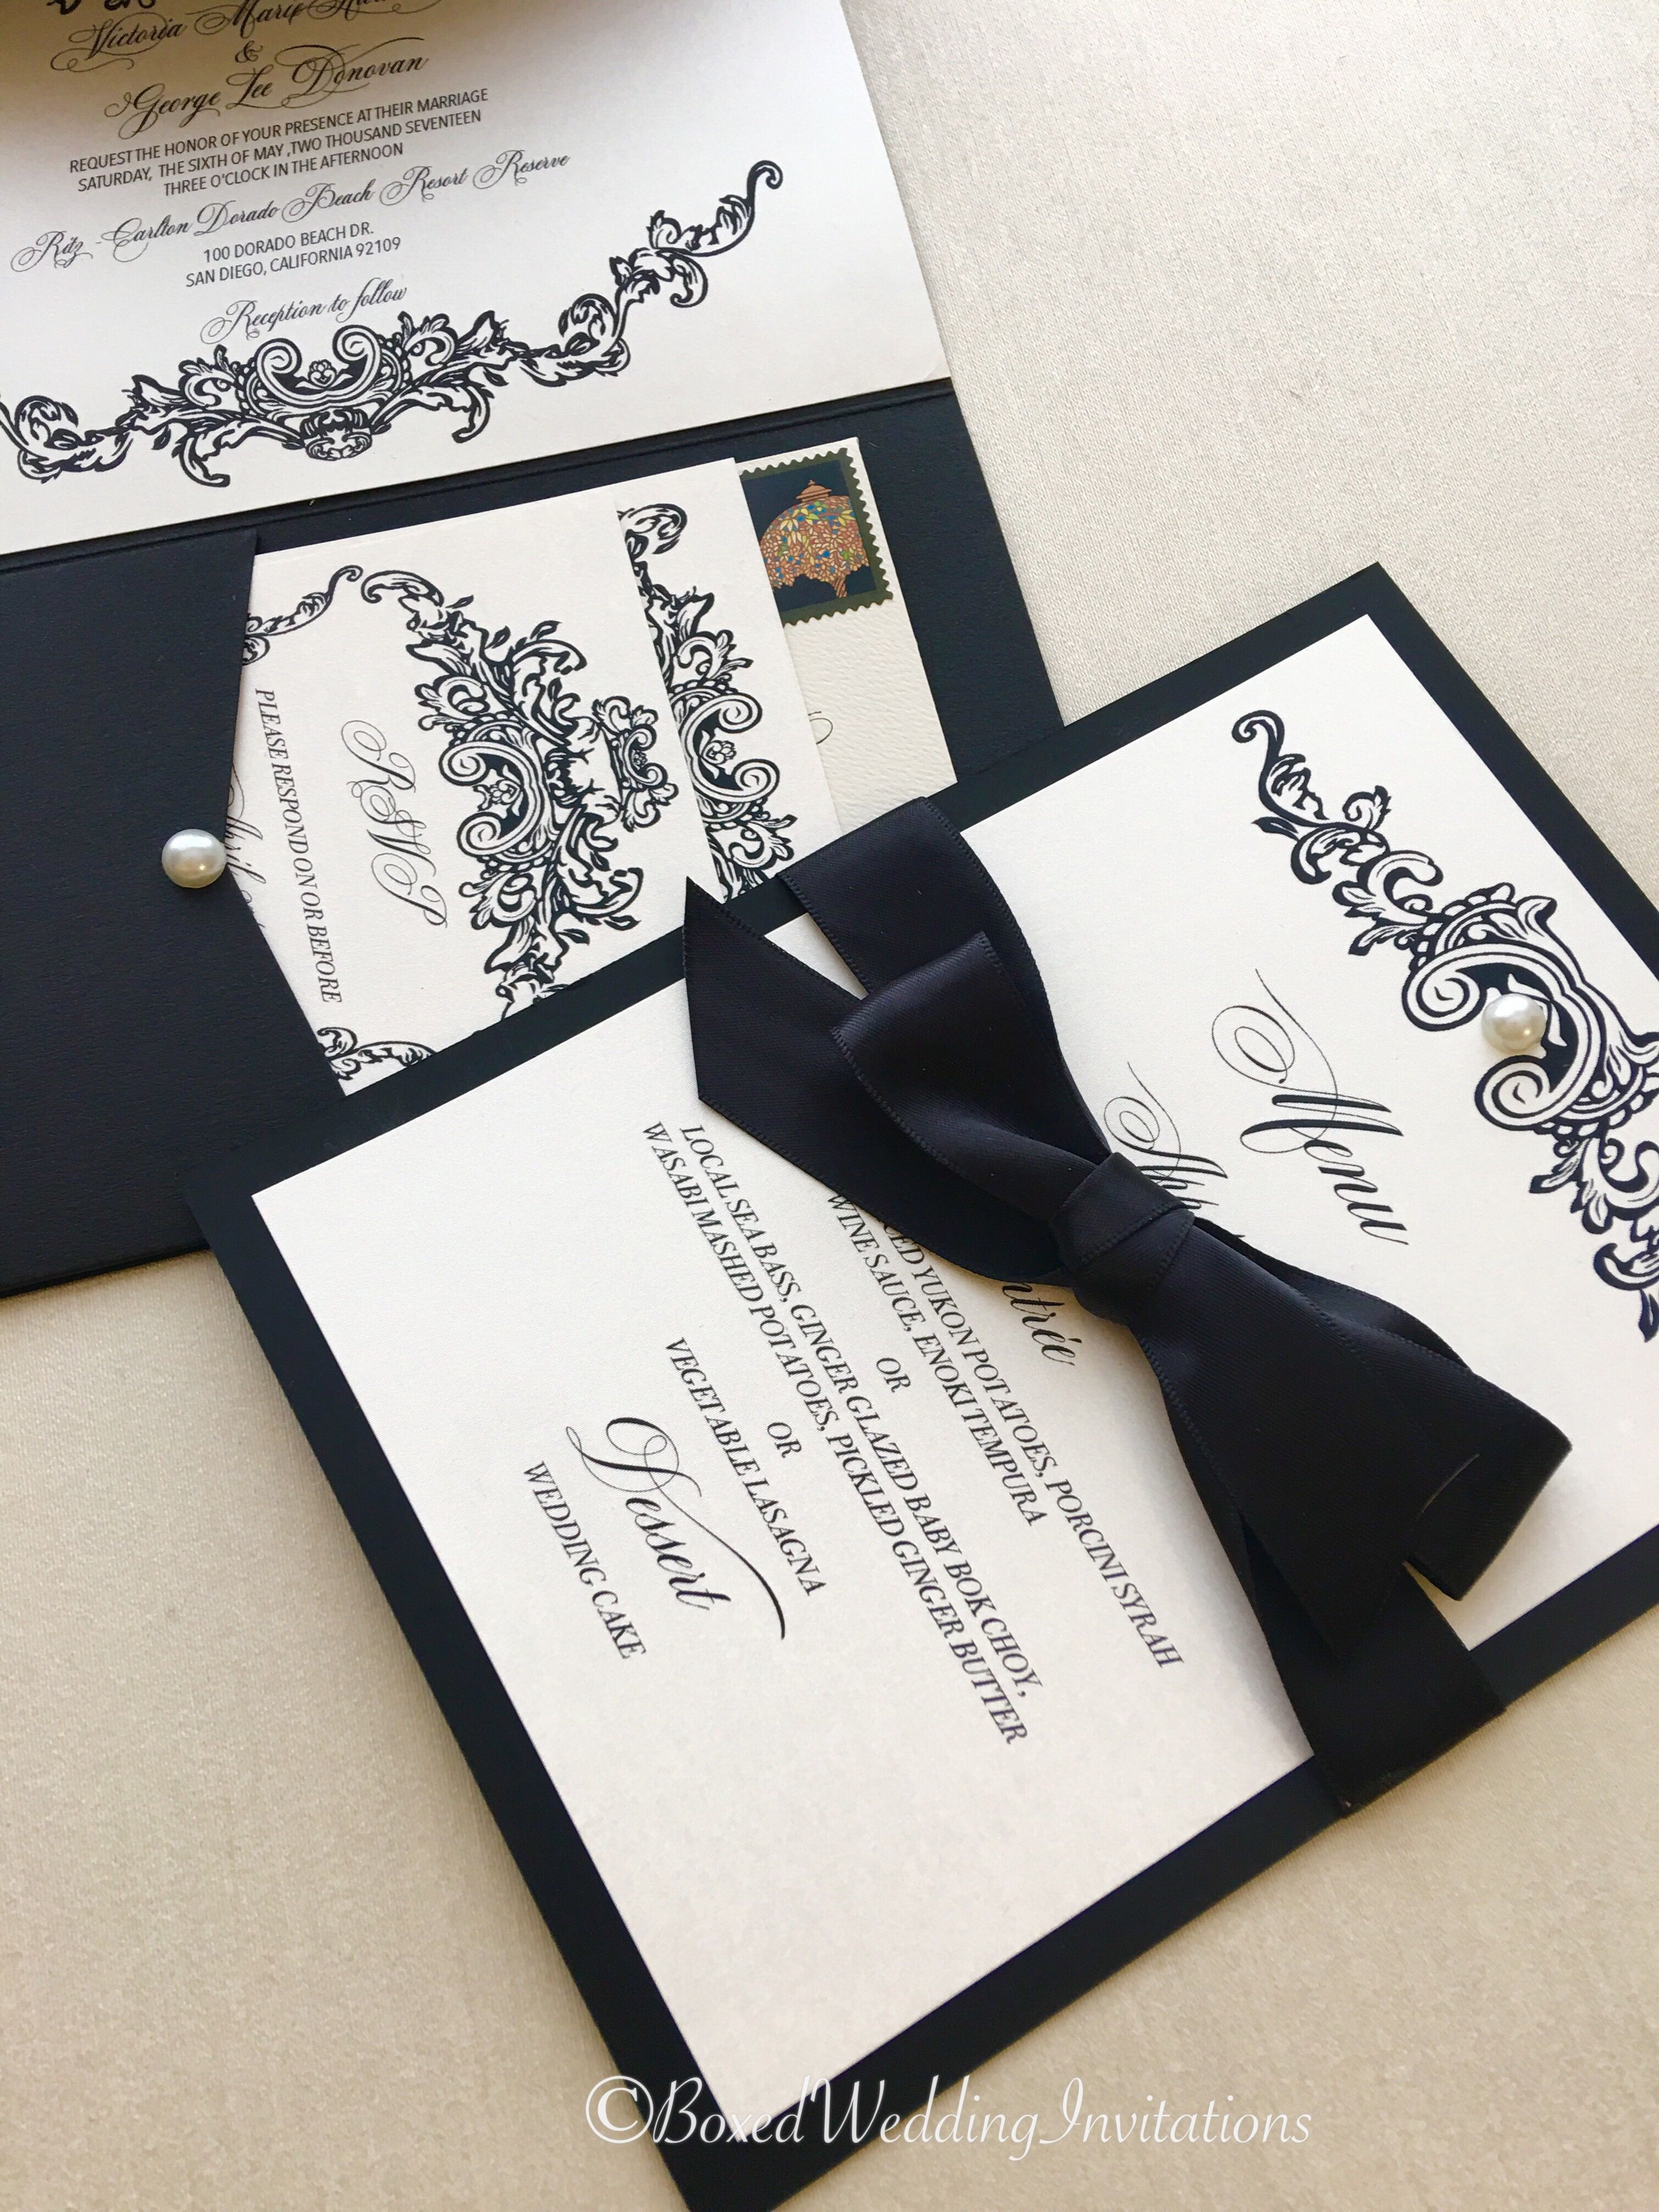 I Love This Royal Design For A Black Tie Wedding It Sets The Mood Event See More At Boxedweddinginvitations Invitation: Black Tie Wedding Invitation Box At Websimilar.org